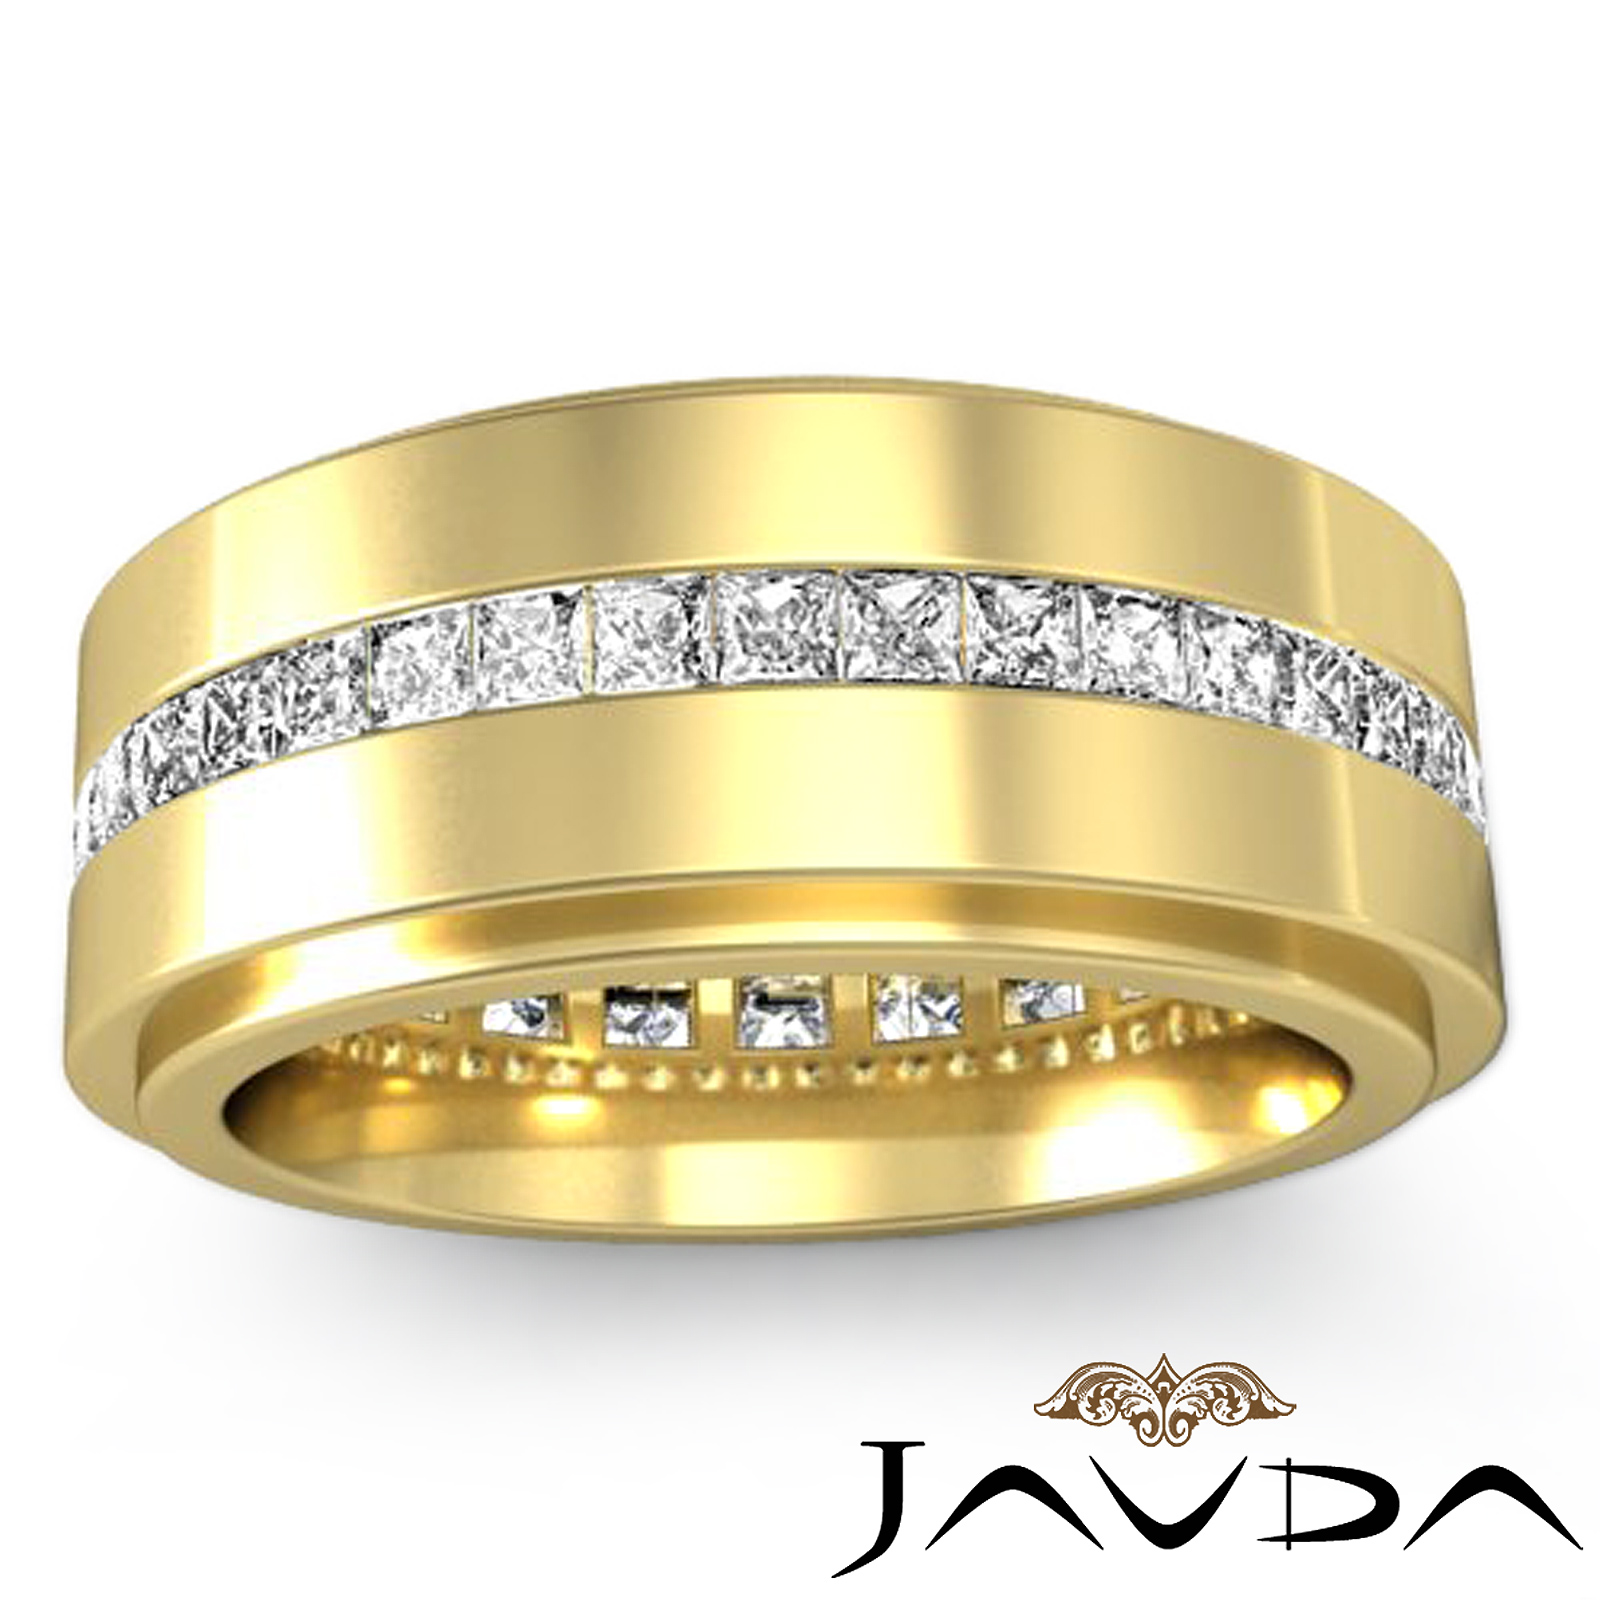 Channel princess diamond ring 18k yellow gold mens for Mens eternity wedding band